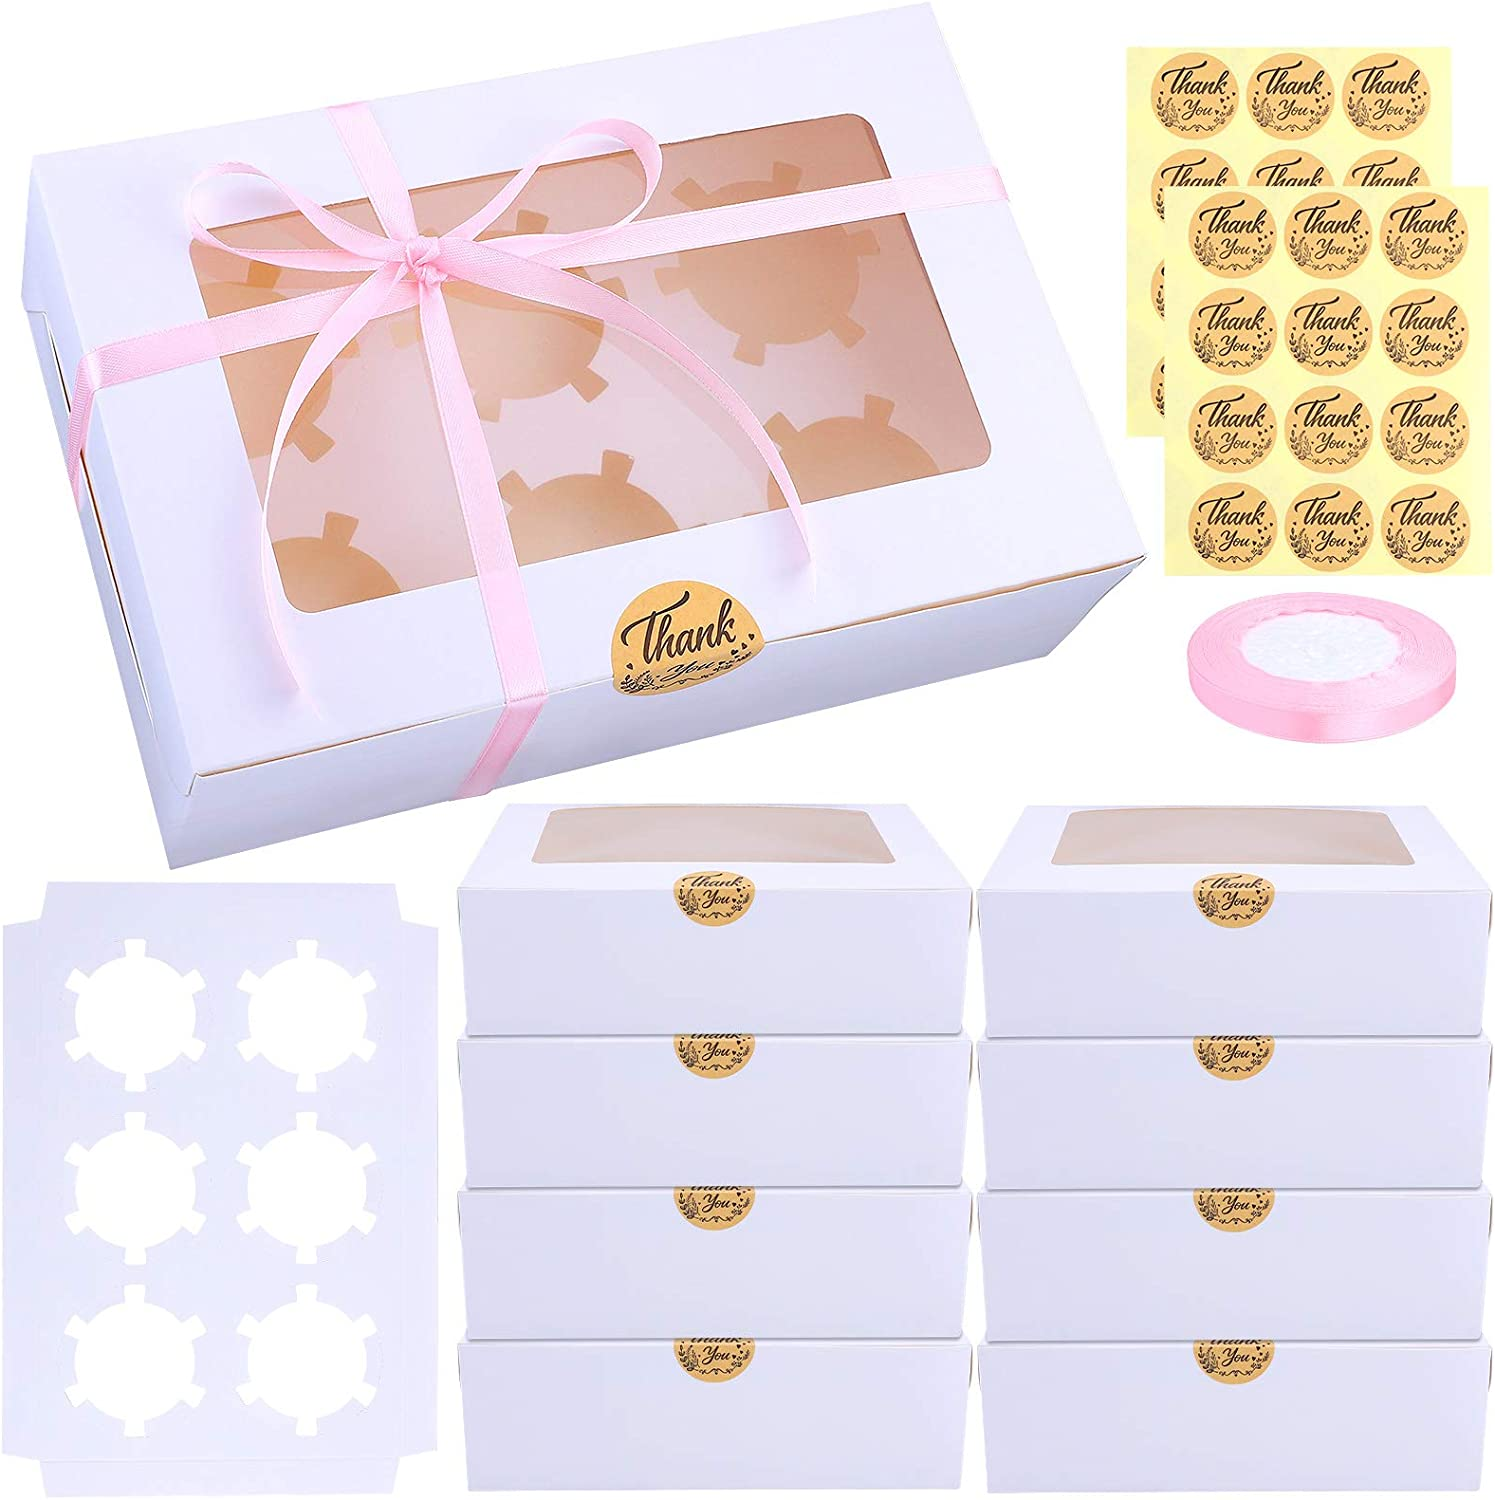 Ruisita 15 Pack Cupcake Boxes White Paper Cupcake Carriers Bakery Box with Inserts and Window Cake Carrier Container Cookie Gift Boxes 6 Holders for Dessert, Pastries, Cake, Muffin, Donut, Macaron